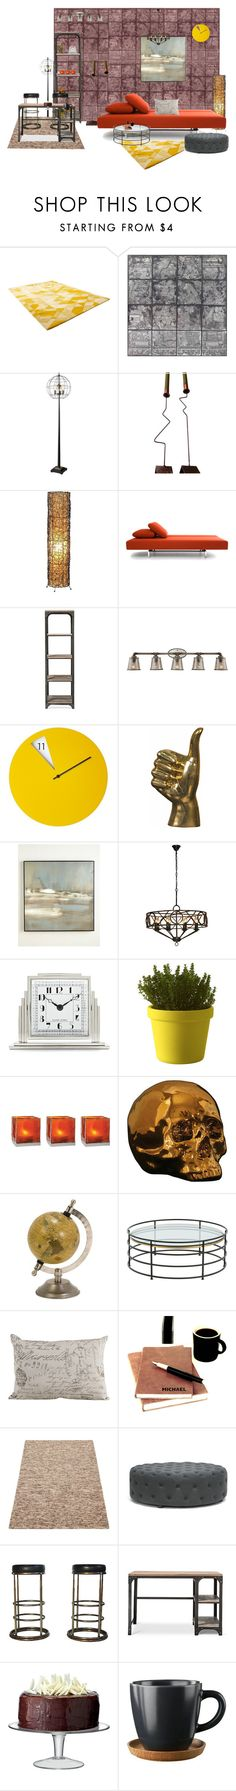 """""""My take on industrial interior"""" by lindagama on Polyvore featuring interior, interiors, interior design, home, home decor, interior decorating, Cyan Design, Universal Lighting and Decor, Benson-Cobb Studios and Ralph Lauren Home"""